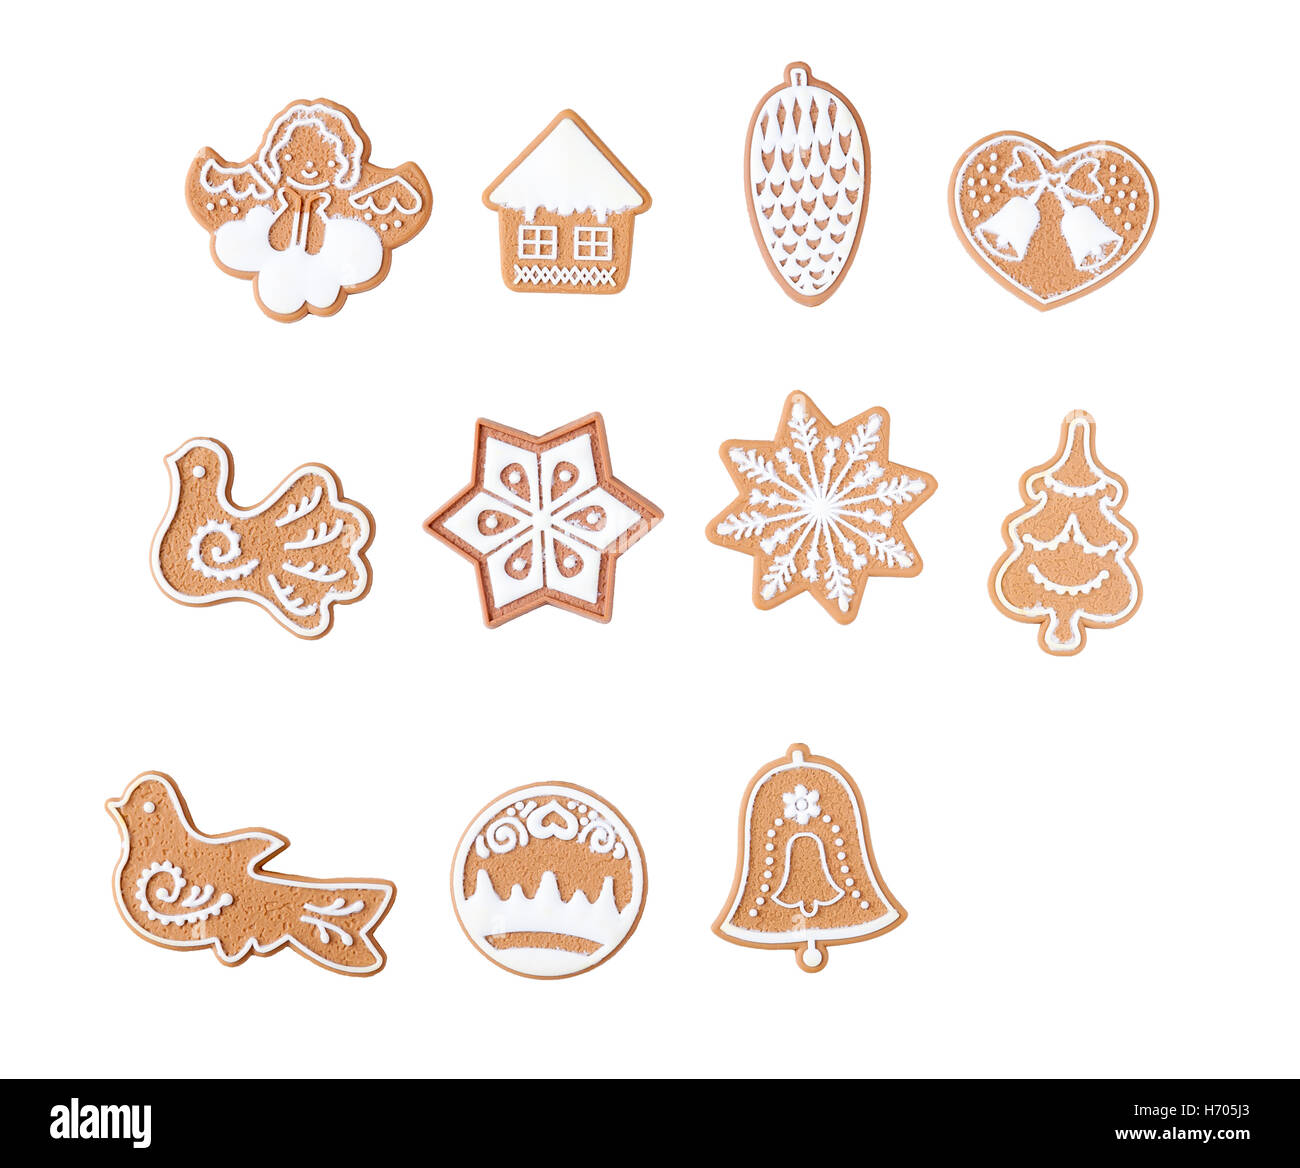 Gingerbread with frosting, different shapes isolated on white background. Stock Photo